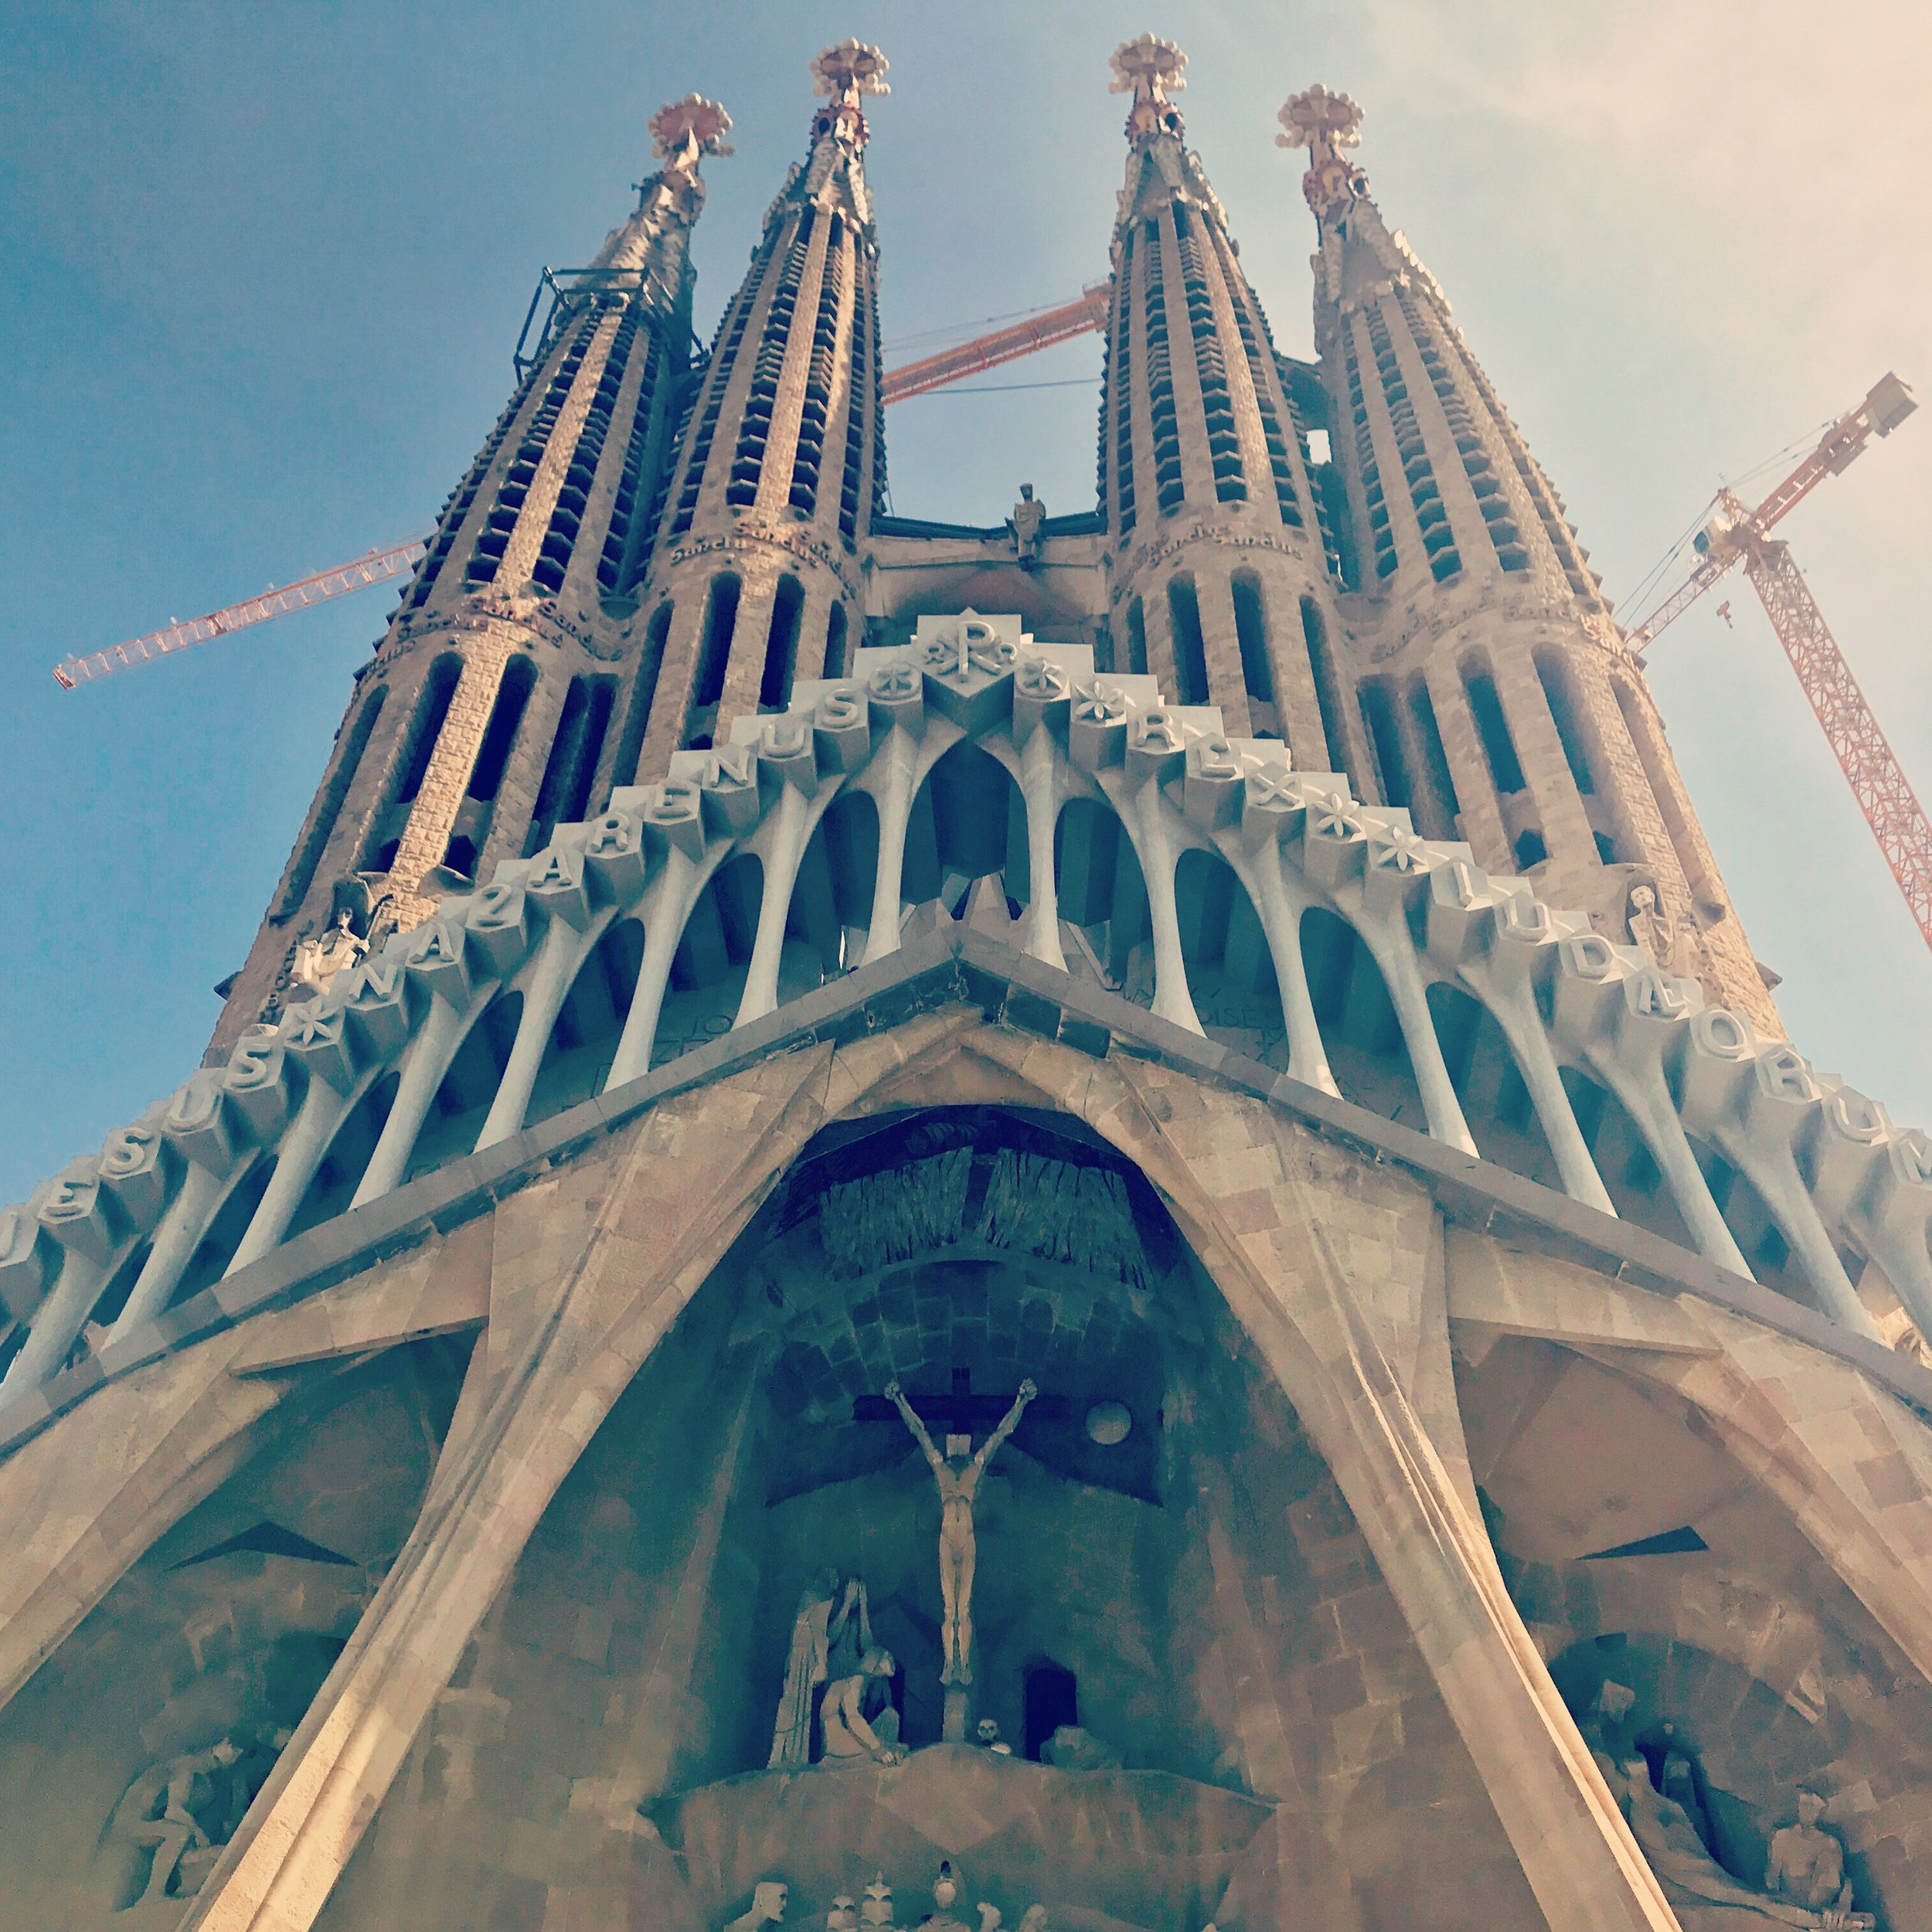 The Segrada Familia church; Construction has been ongoing since 1882 and is scheduled to be complete in 2026; It was fun to see the improvements since we last visited Barcelona approximately five years ago